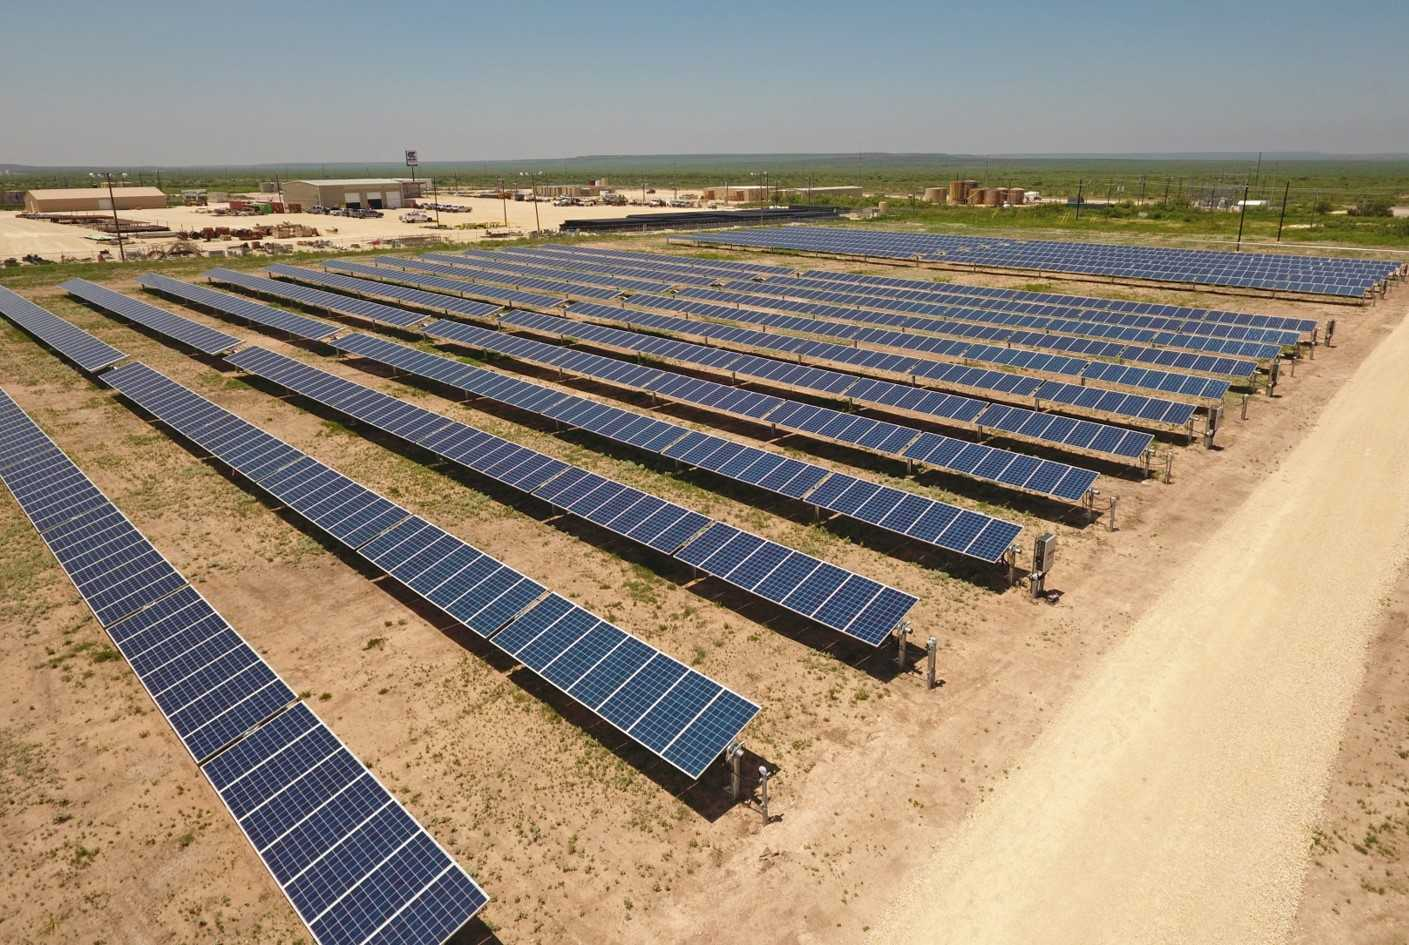 Concho Valley Solar